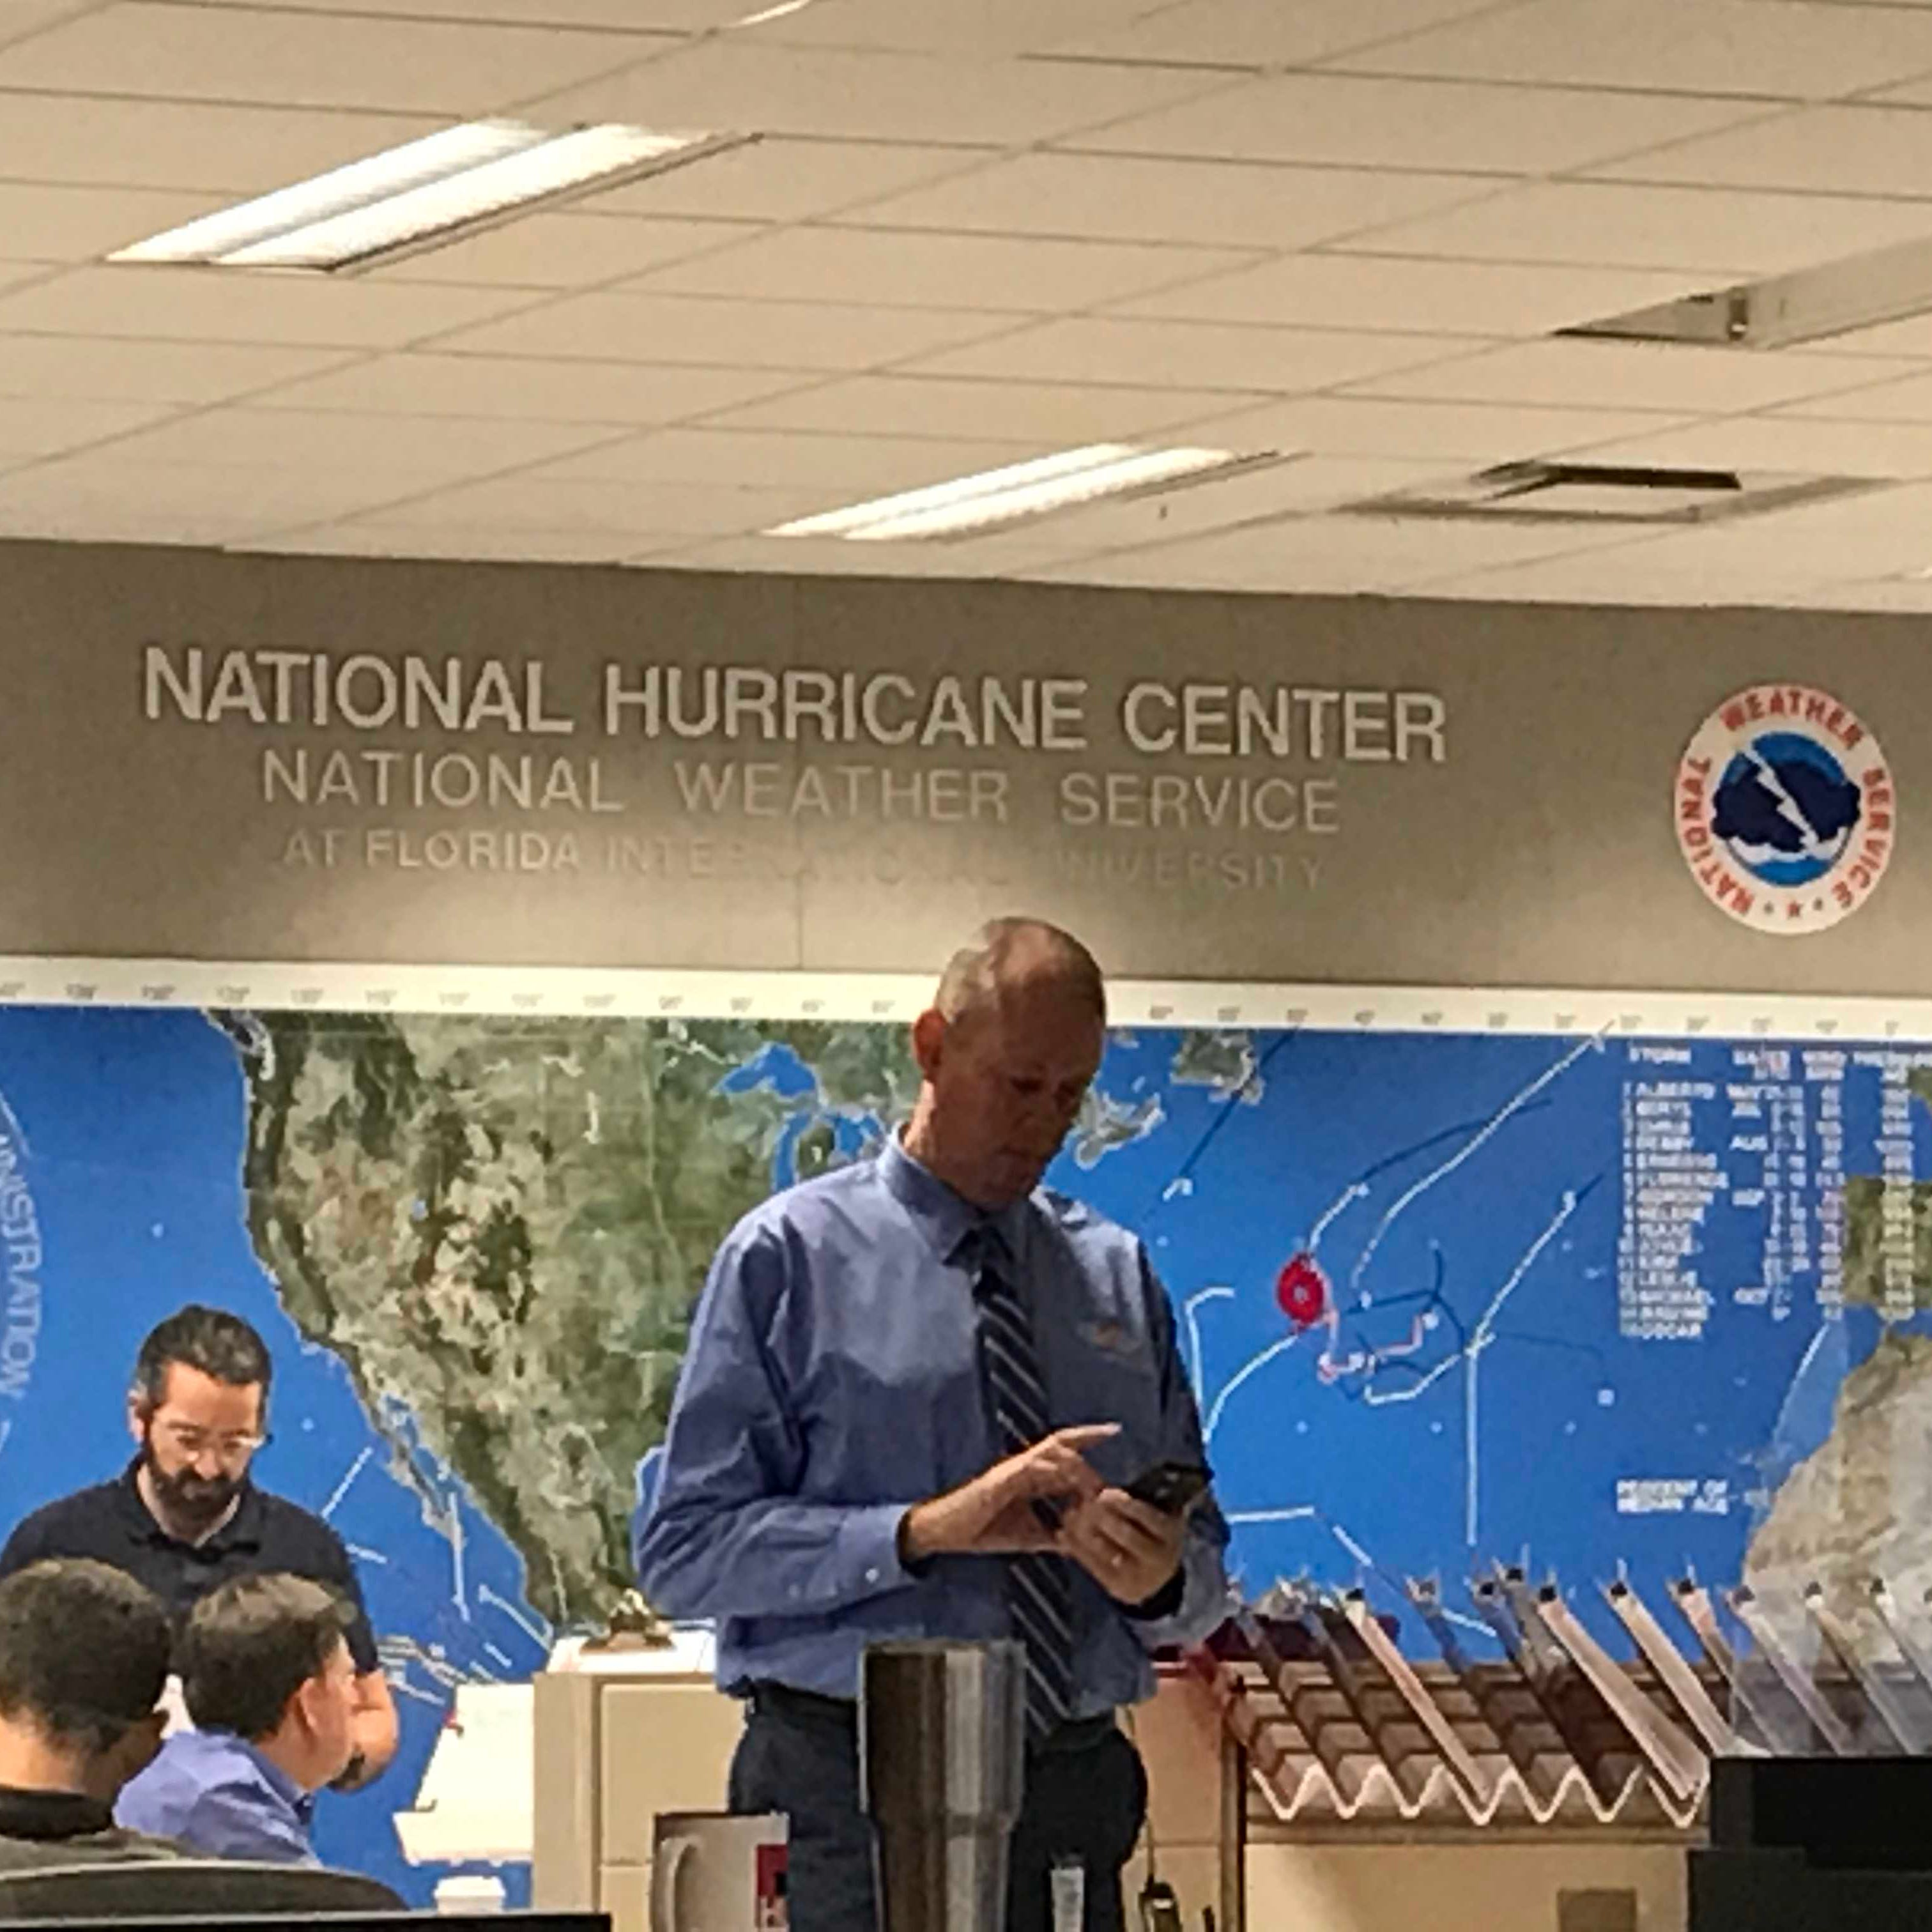 LIVE: TCPalm is at the National Hurricane Center for the latest on Hurricane Michael